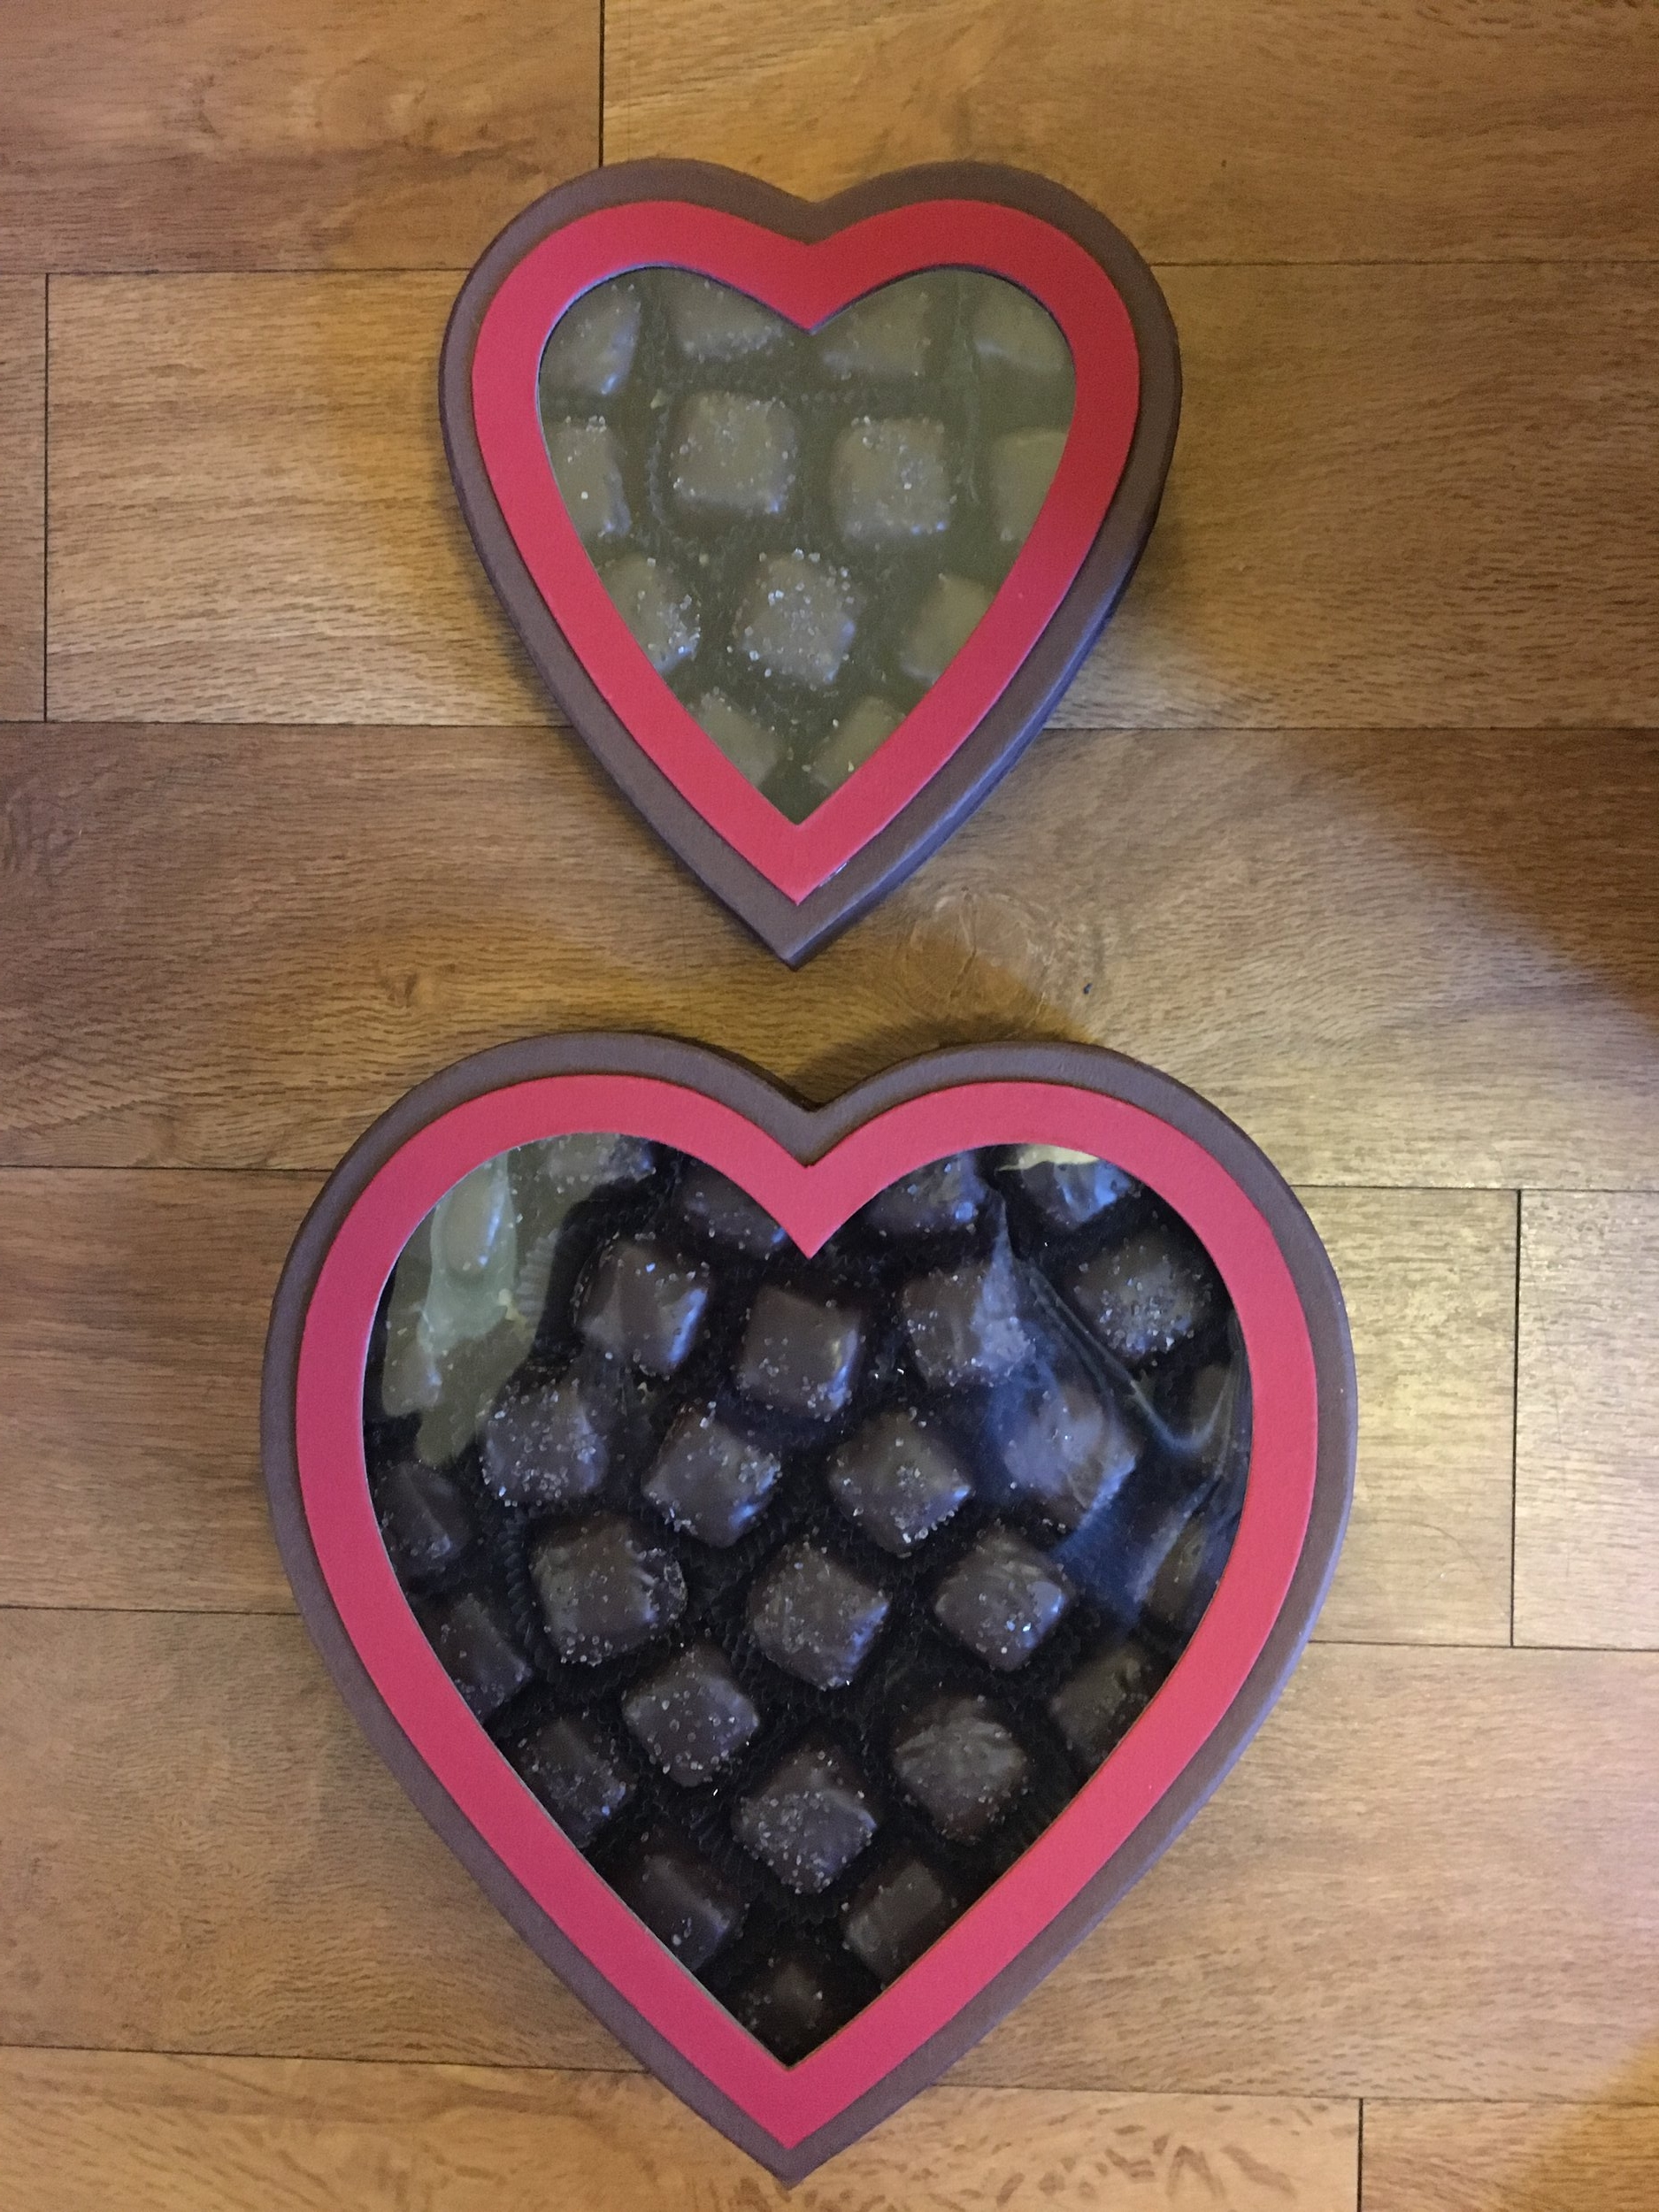 Clear Window Heart Box  1 lb. box - $5.95 1/2 lb. box - $4.75  (Does not include candy)